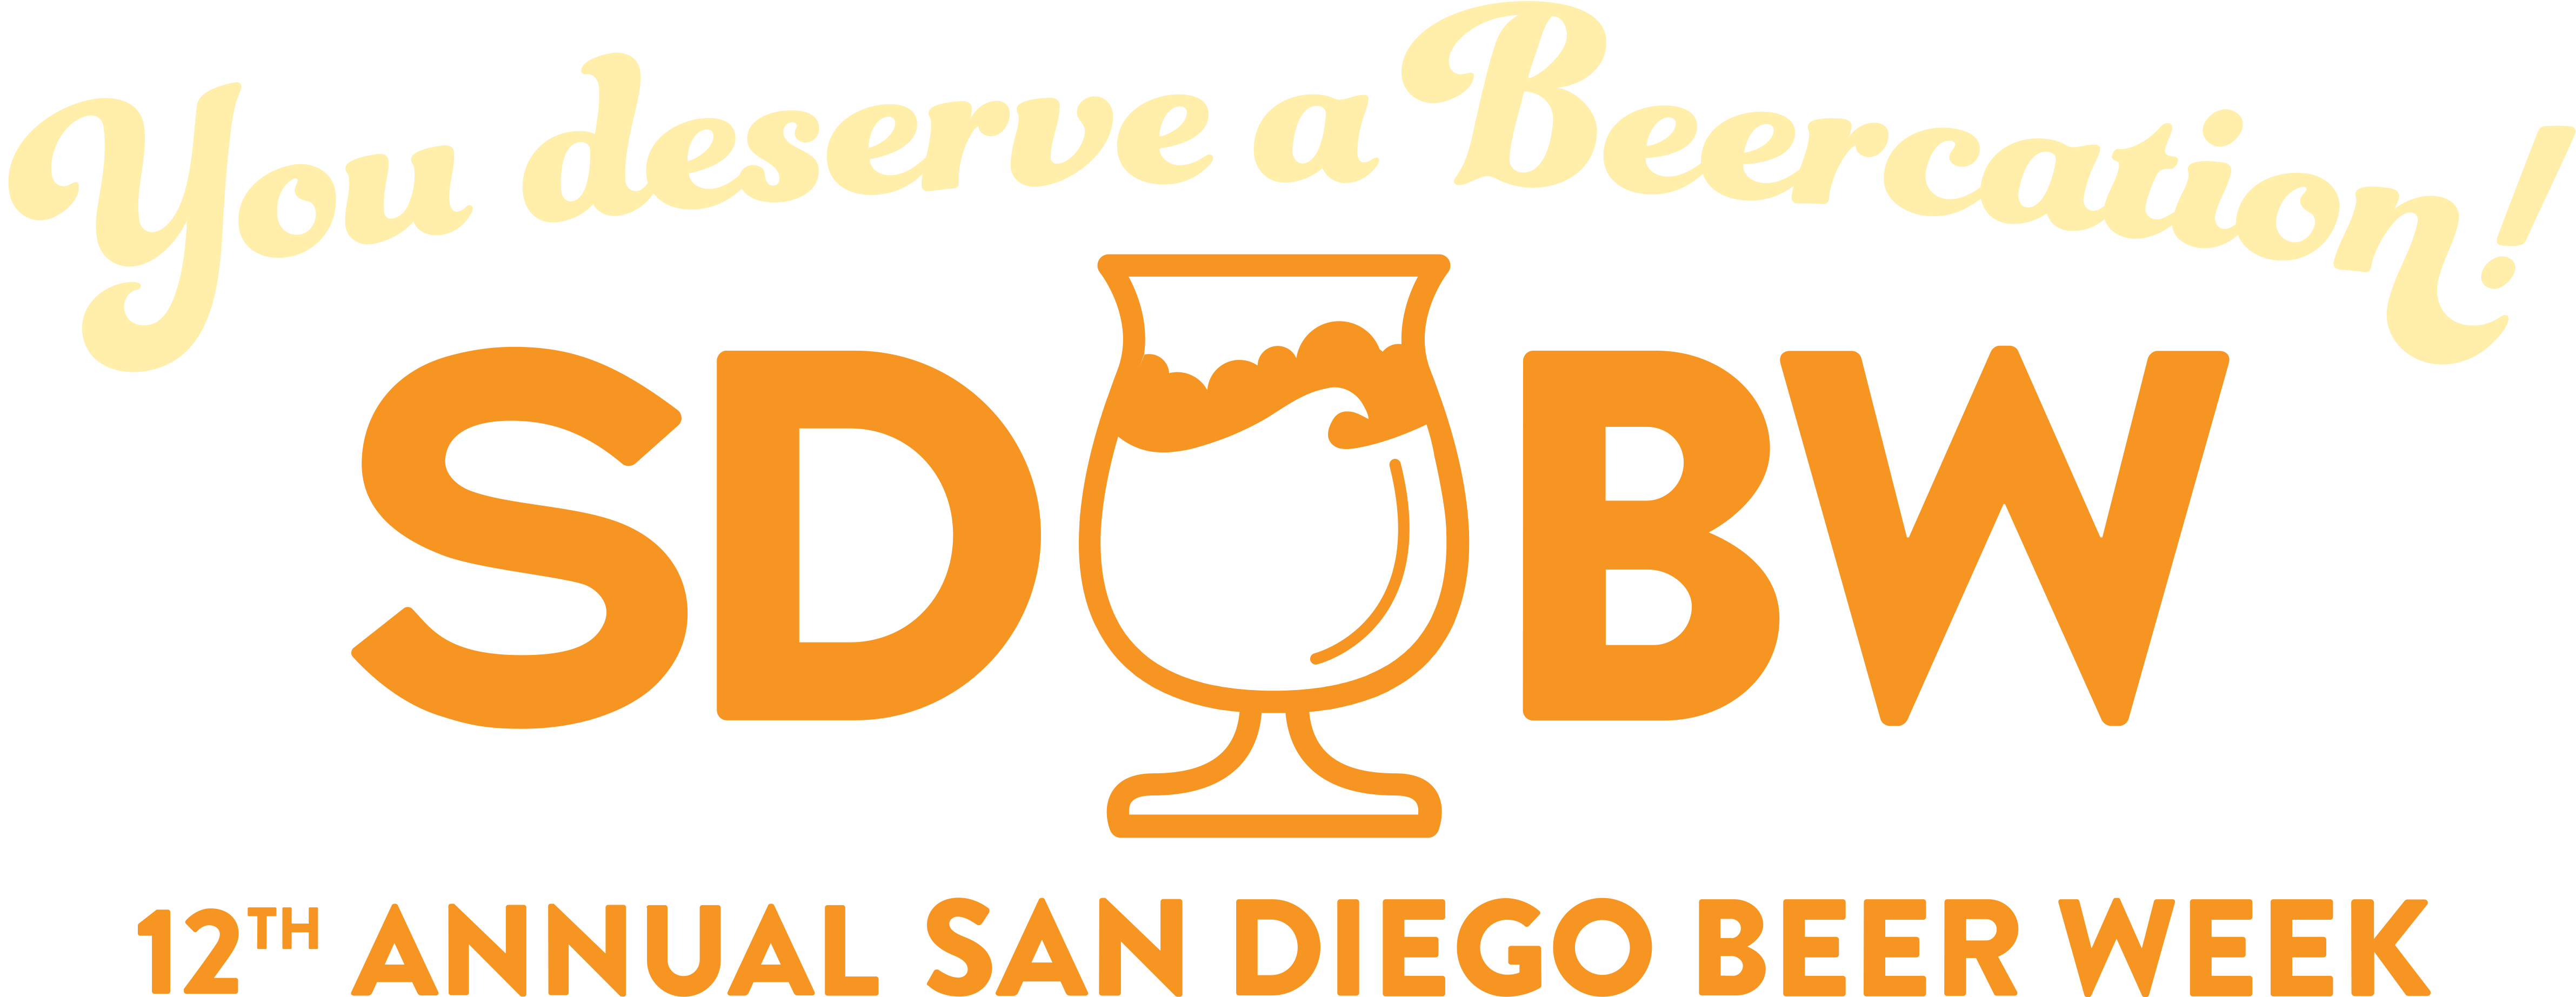 BEERCATION LOGO SIMPLE